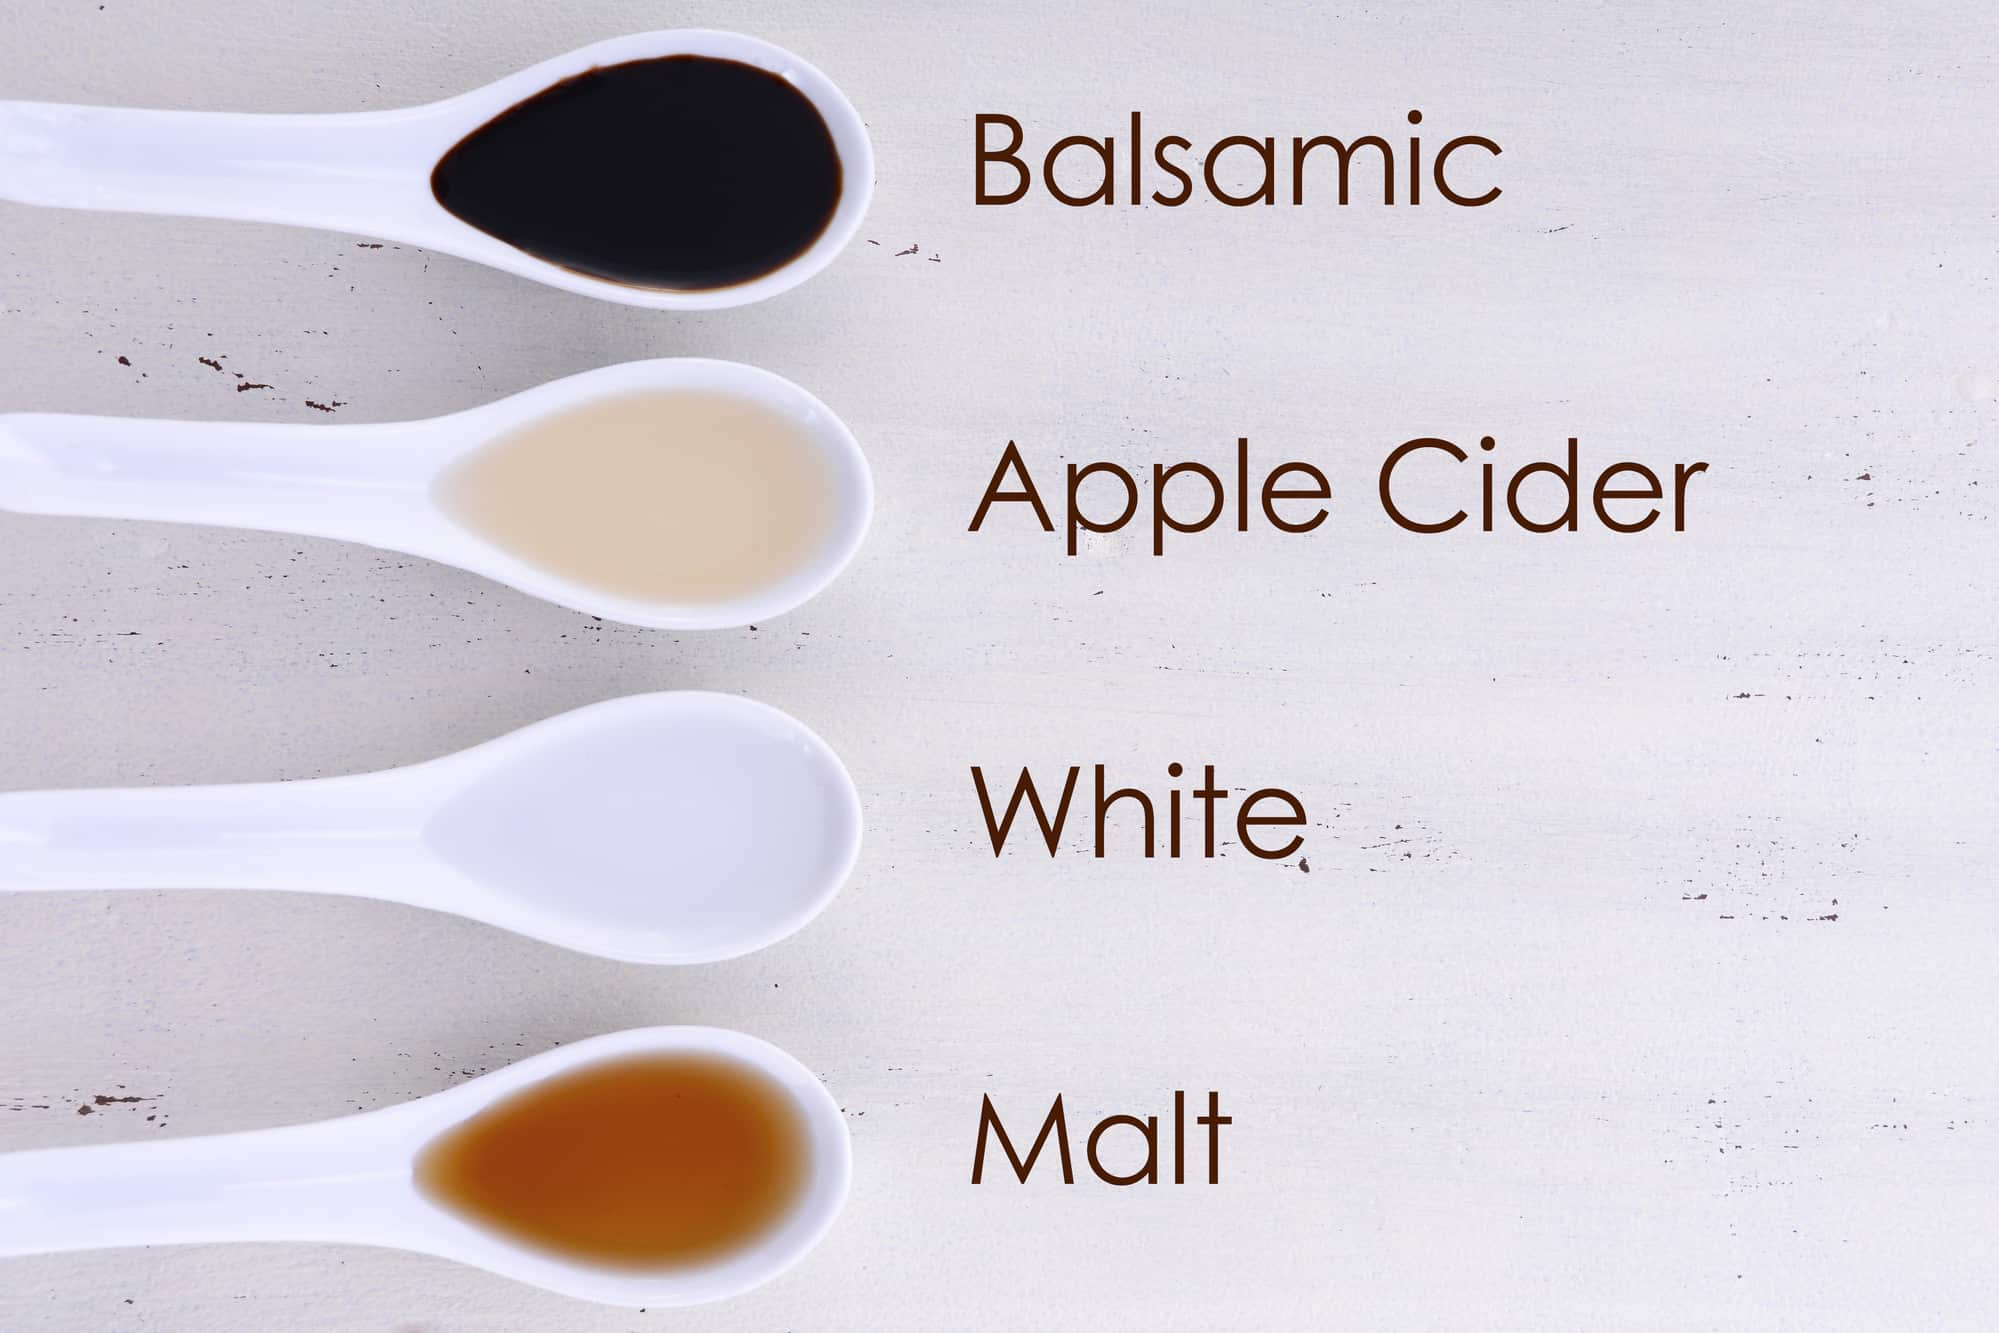 Serving size samples of different types of vinegar including Balsamic, Apple Cider, White and Malt vinegars, with text names added